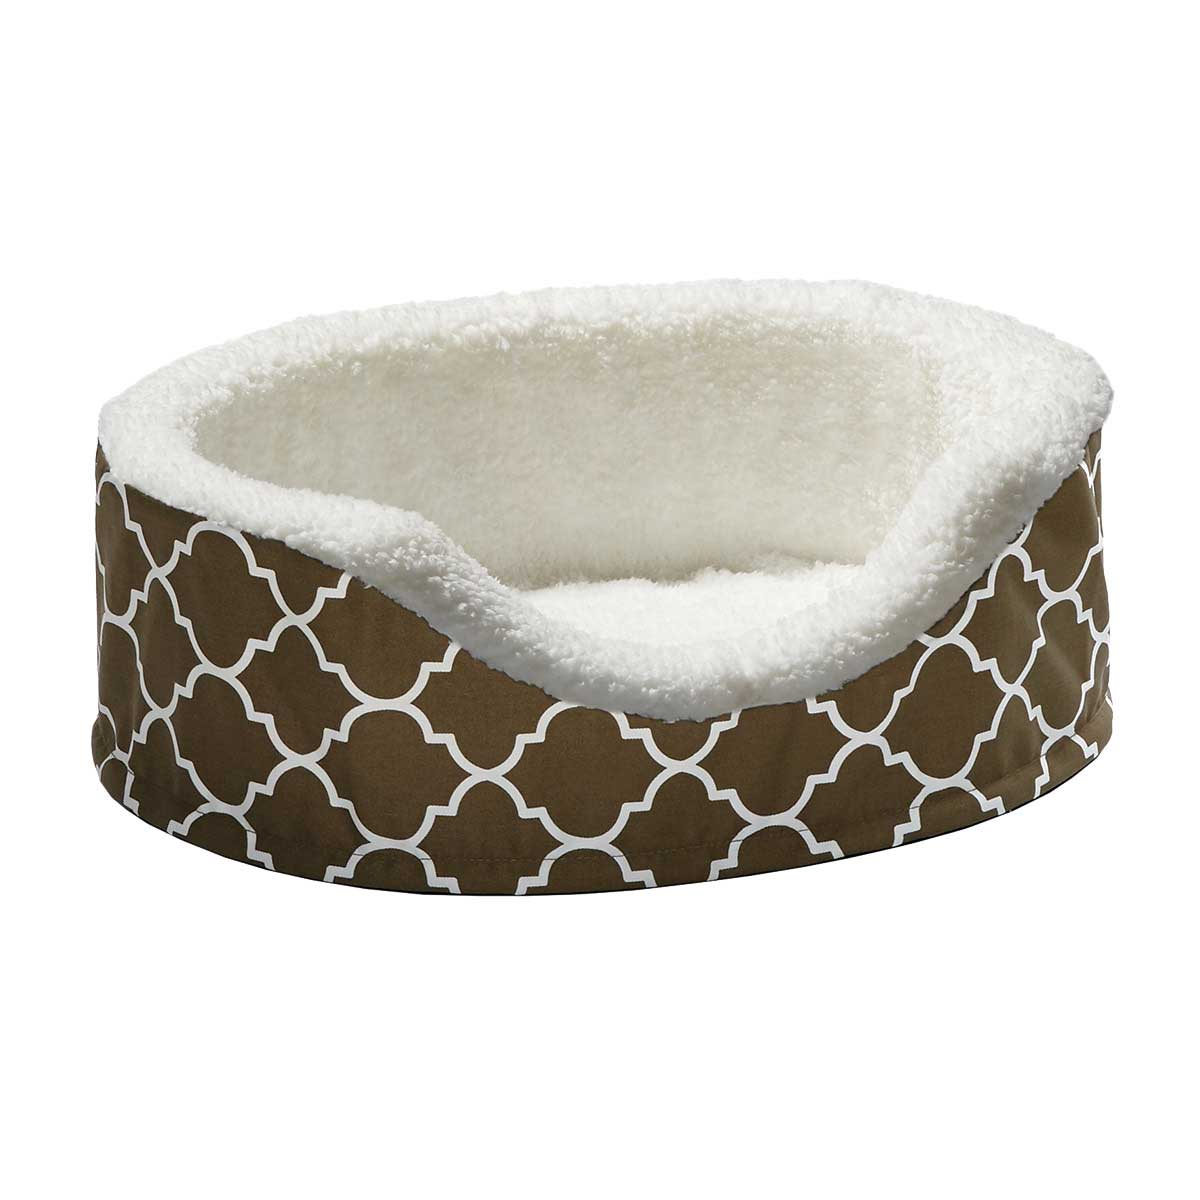 Midwest Quiet Time Orthopedic Nesting Bed for Dogs With Teflon Brown 17.5 inches by 14.5 inches